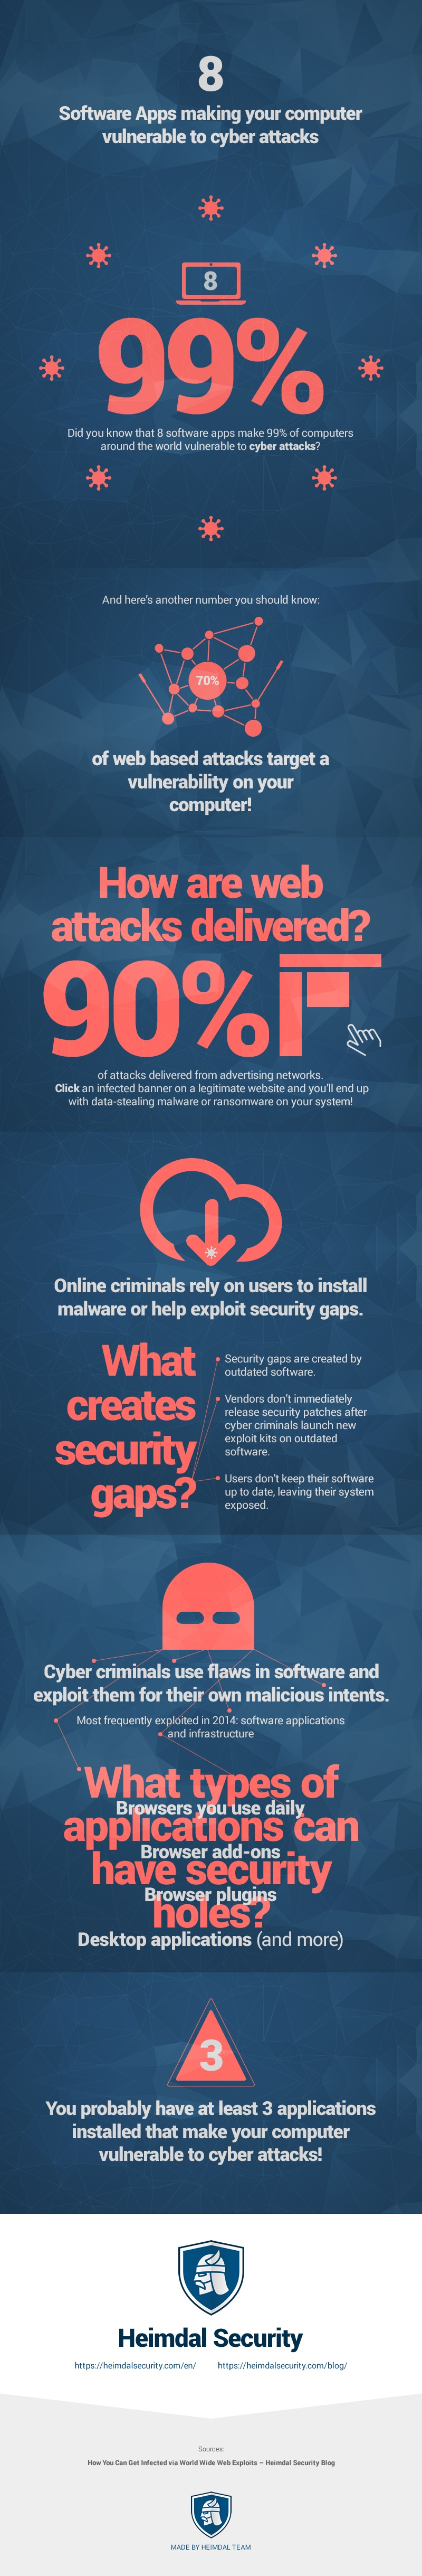 vulnerable-software-apps-exposing-you-to-cyber-criminals-heimdal-security